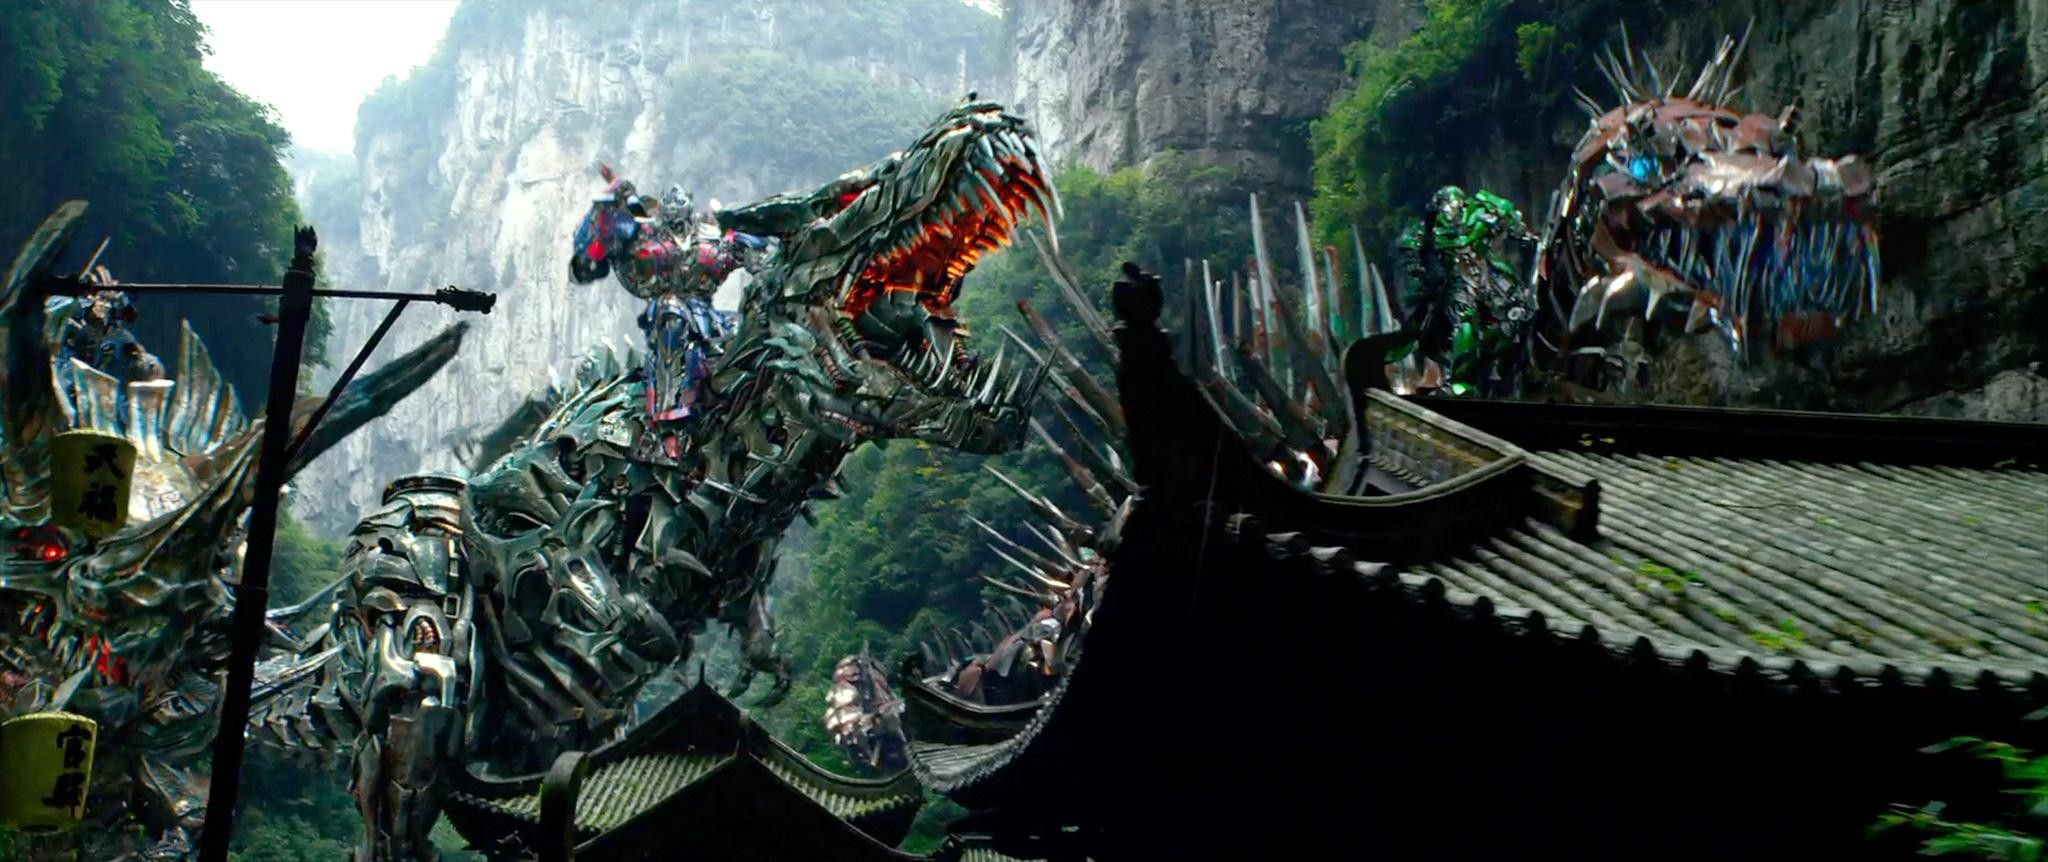 4 More 'Transformers' Sequels Will Destroy The Cinemas